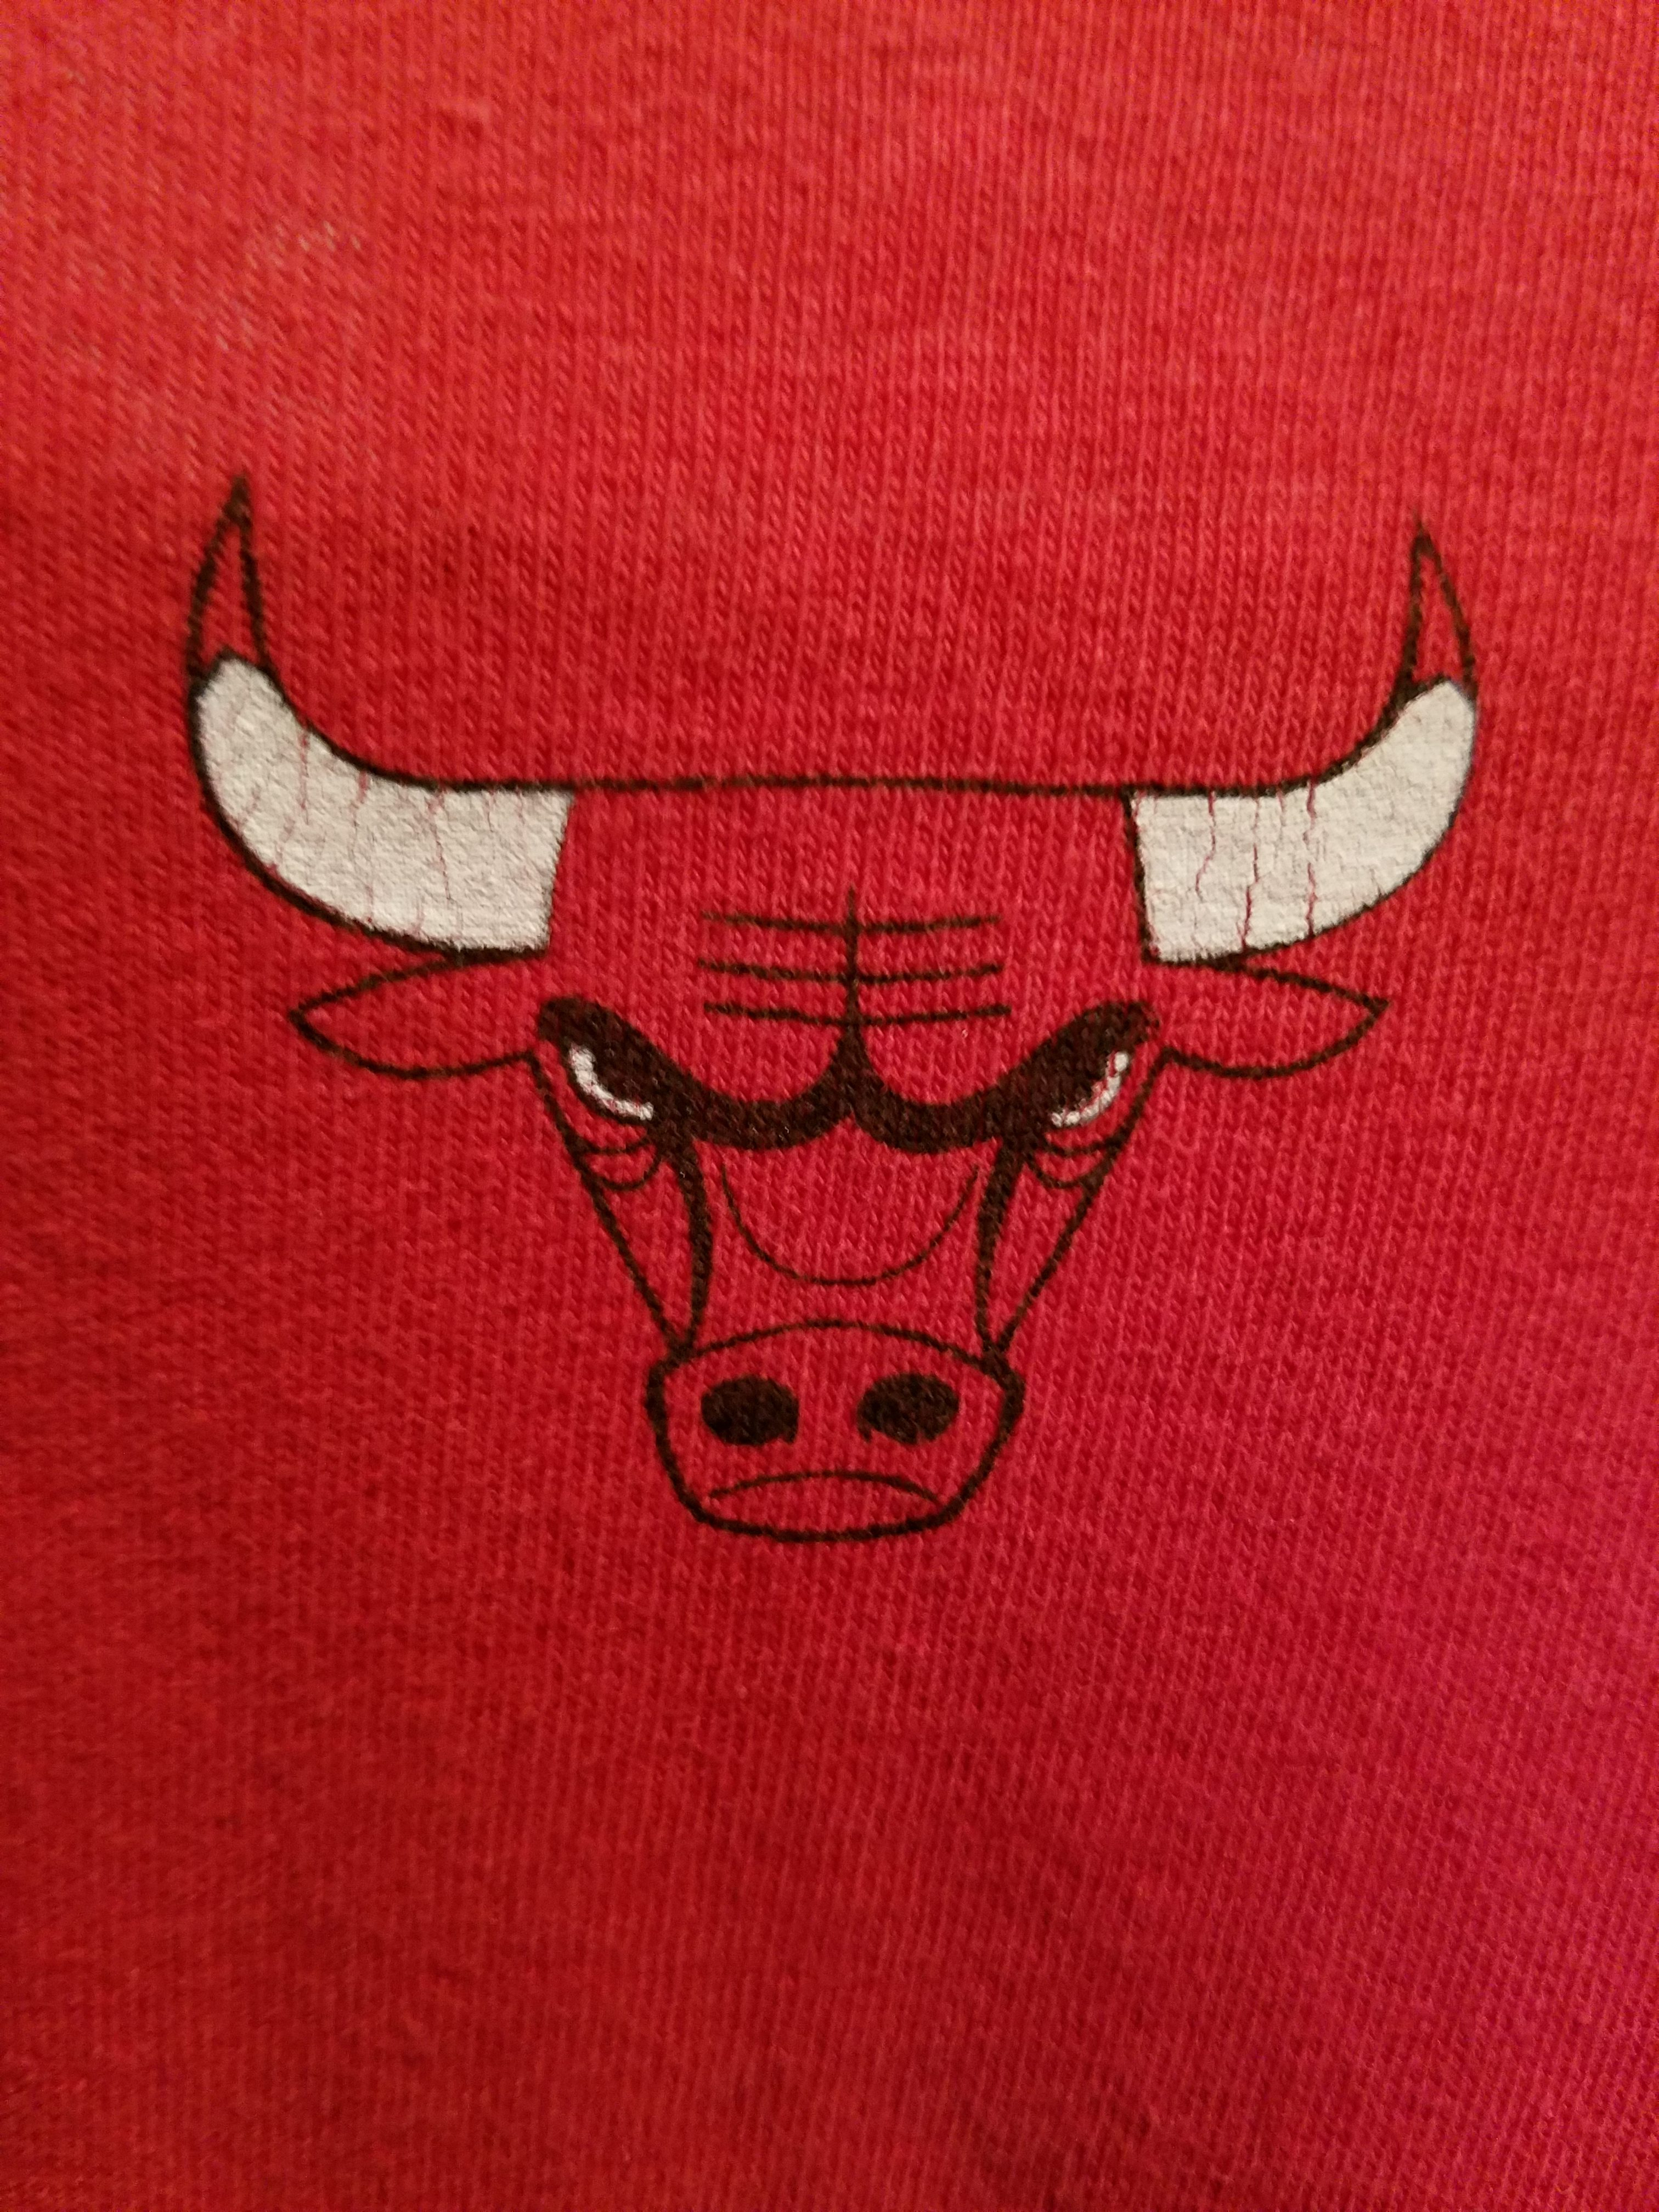 Chicago bulls rebuilding plan is in motion chicago bulls sit back and watch the rebuild voltagebd Gallery